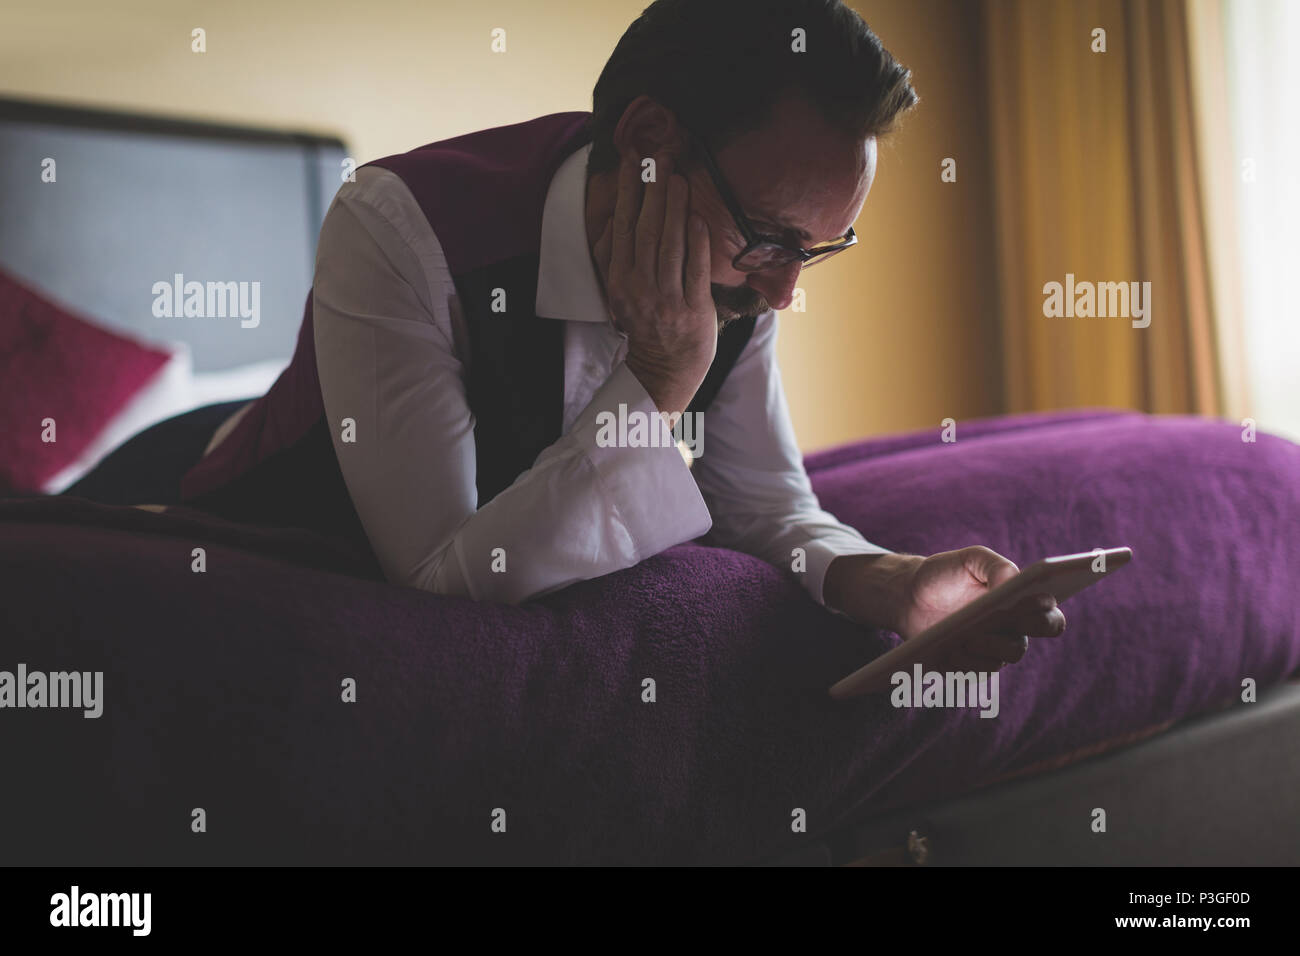 Businessman using digital tablet in bedroom - Stock Image